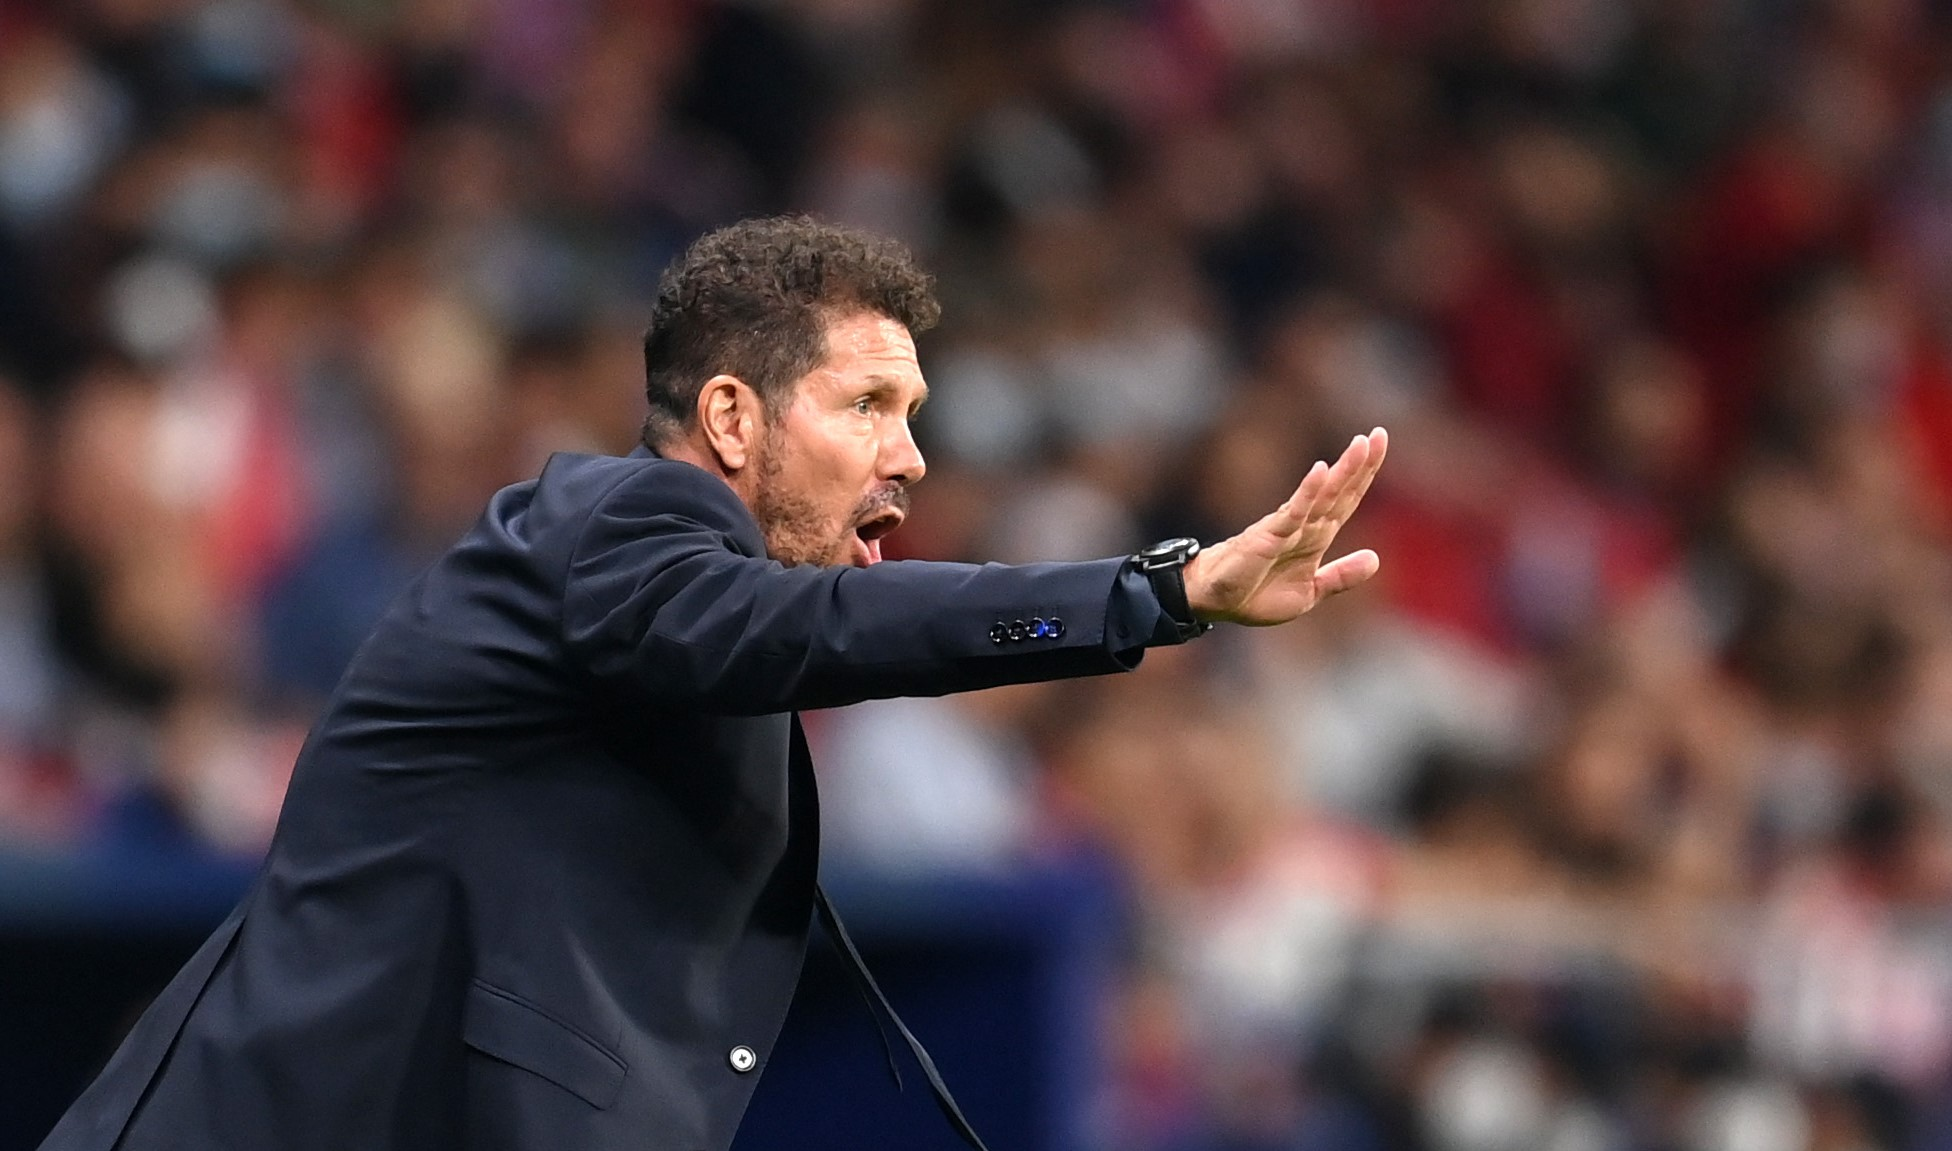 Diego Simeone unhappy with one aspect of Atletico Madrid's play after Real Sociedad draw